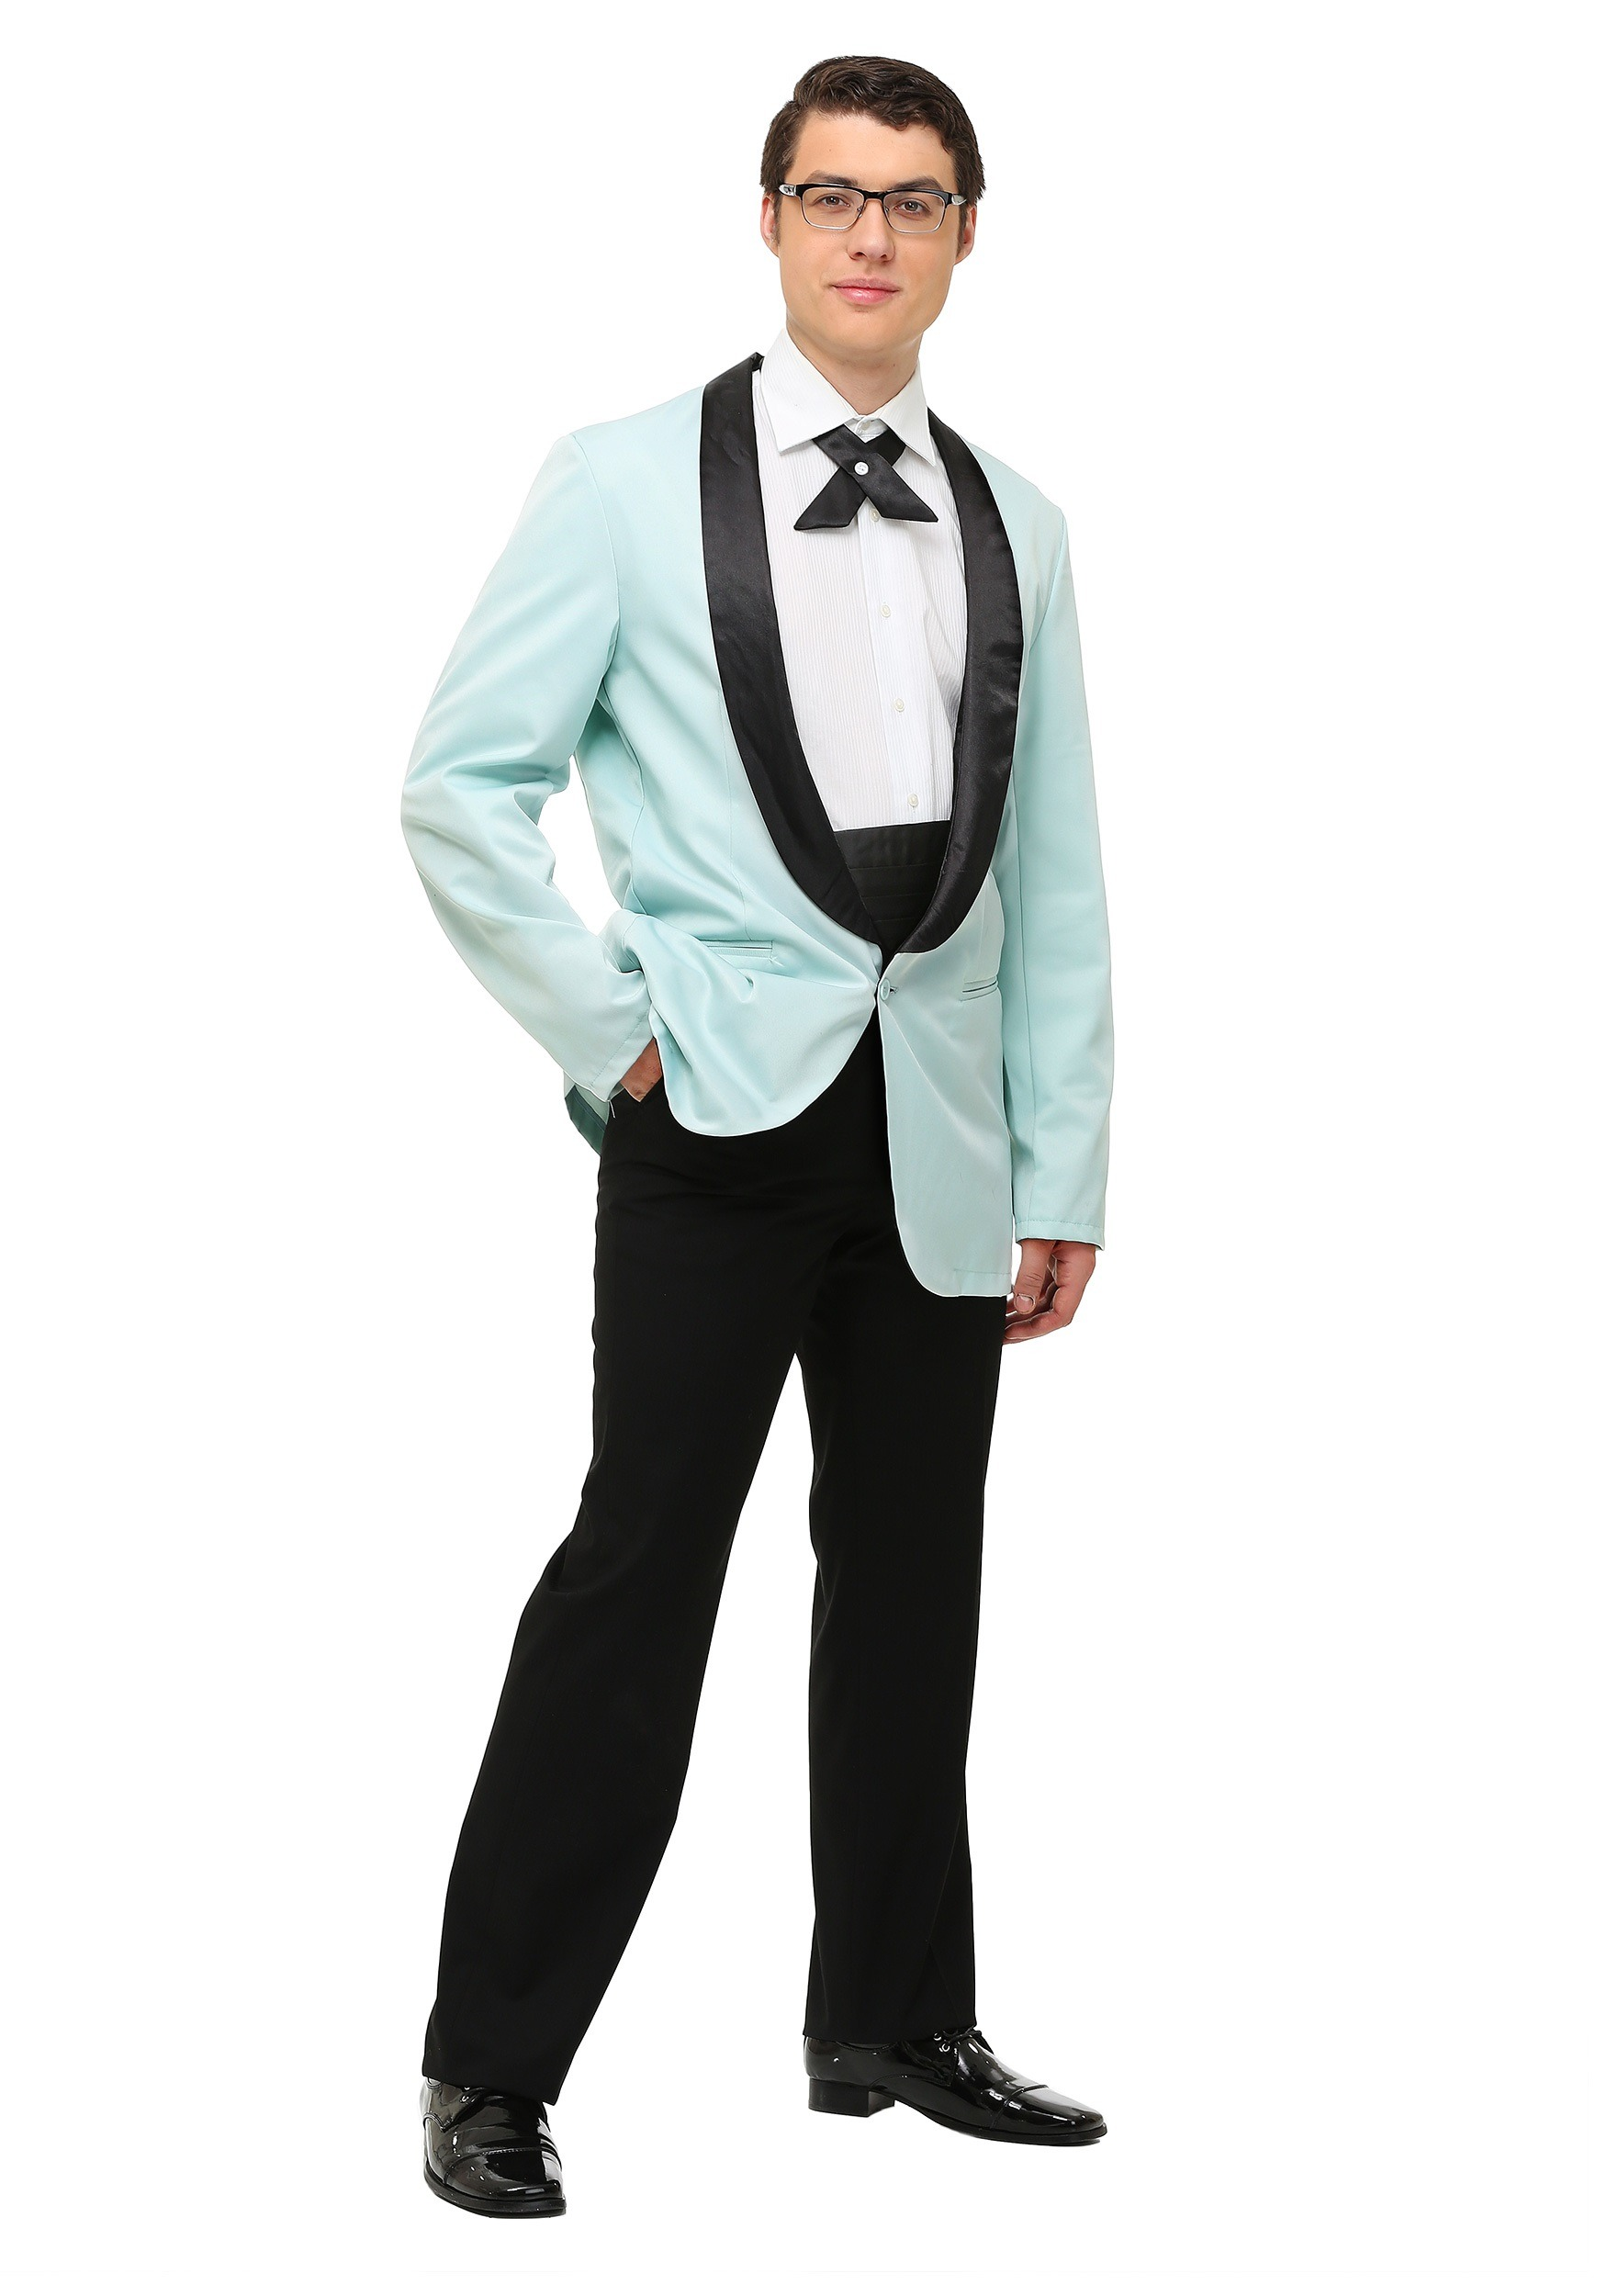 Mens Mr. 50u0027s Costume  sc 1 st  Halloween Costumes & Menu0027s Mr. 50s Costume